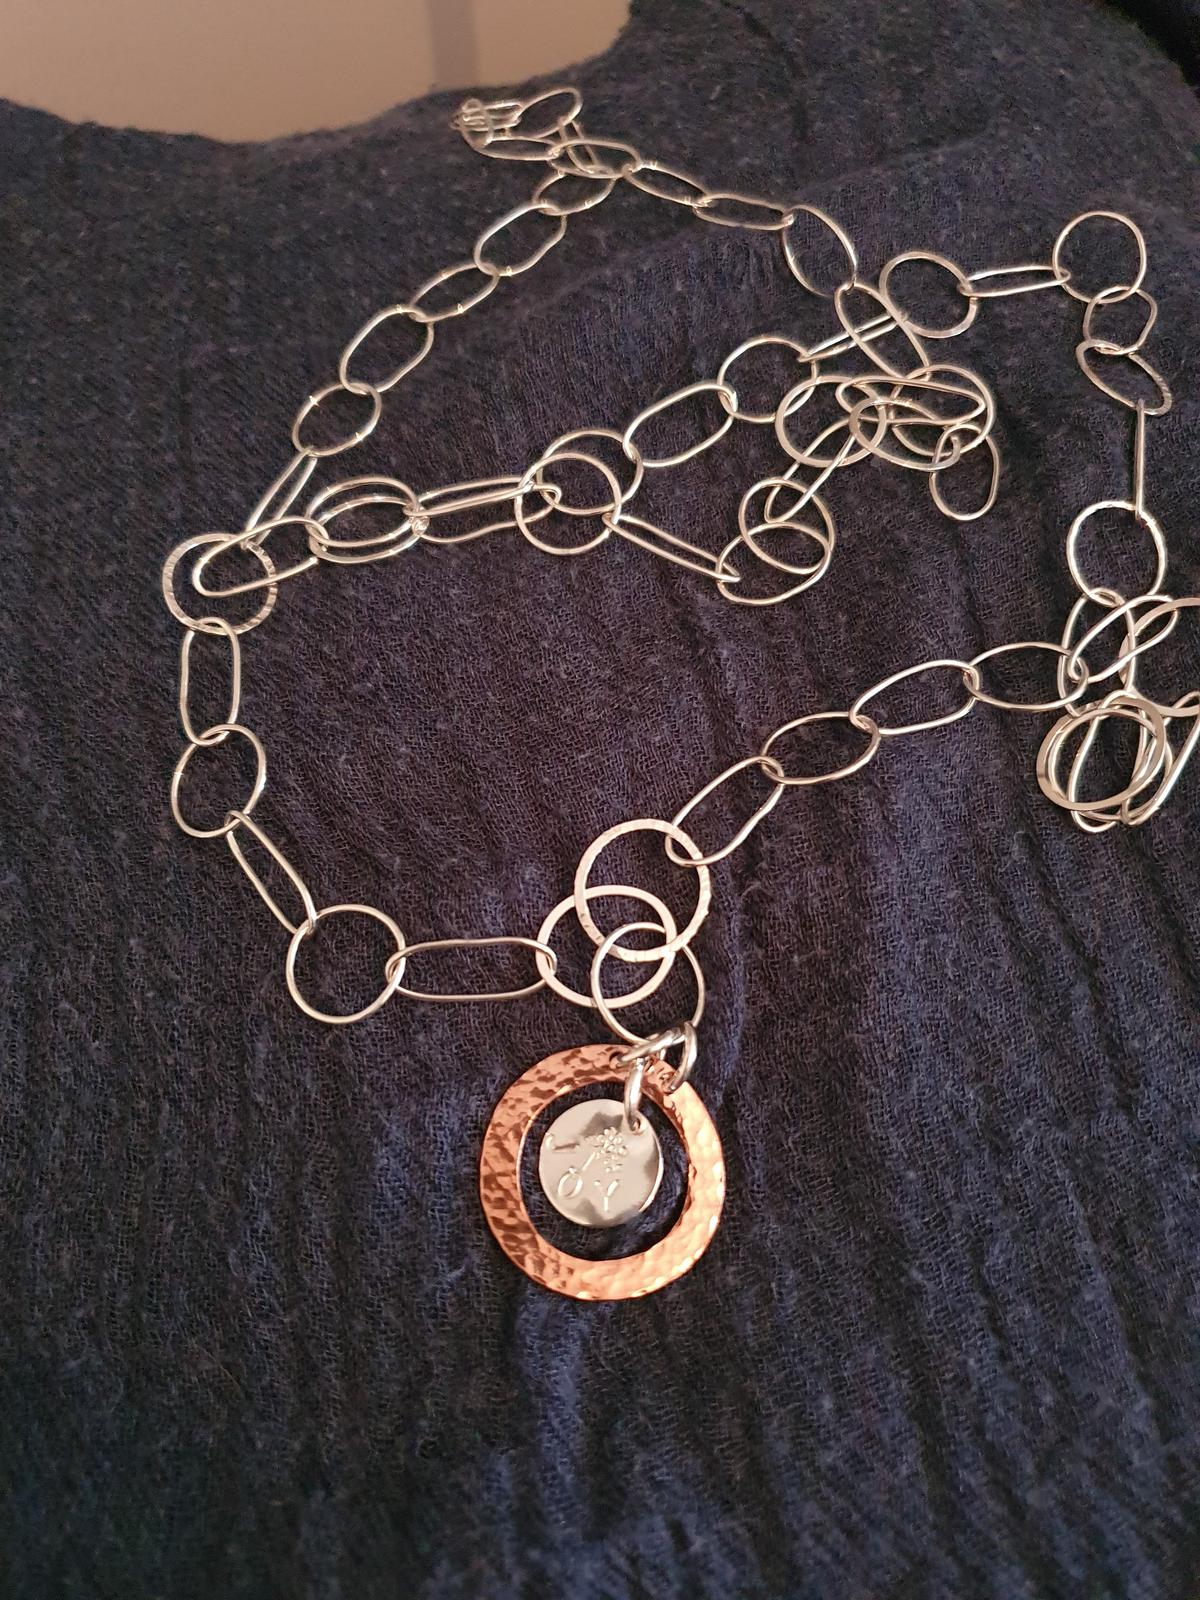 Long, elegant necklace with a 'joy' pendant